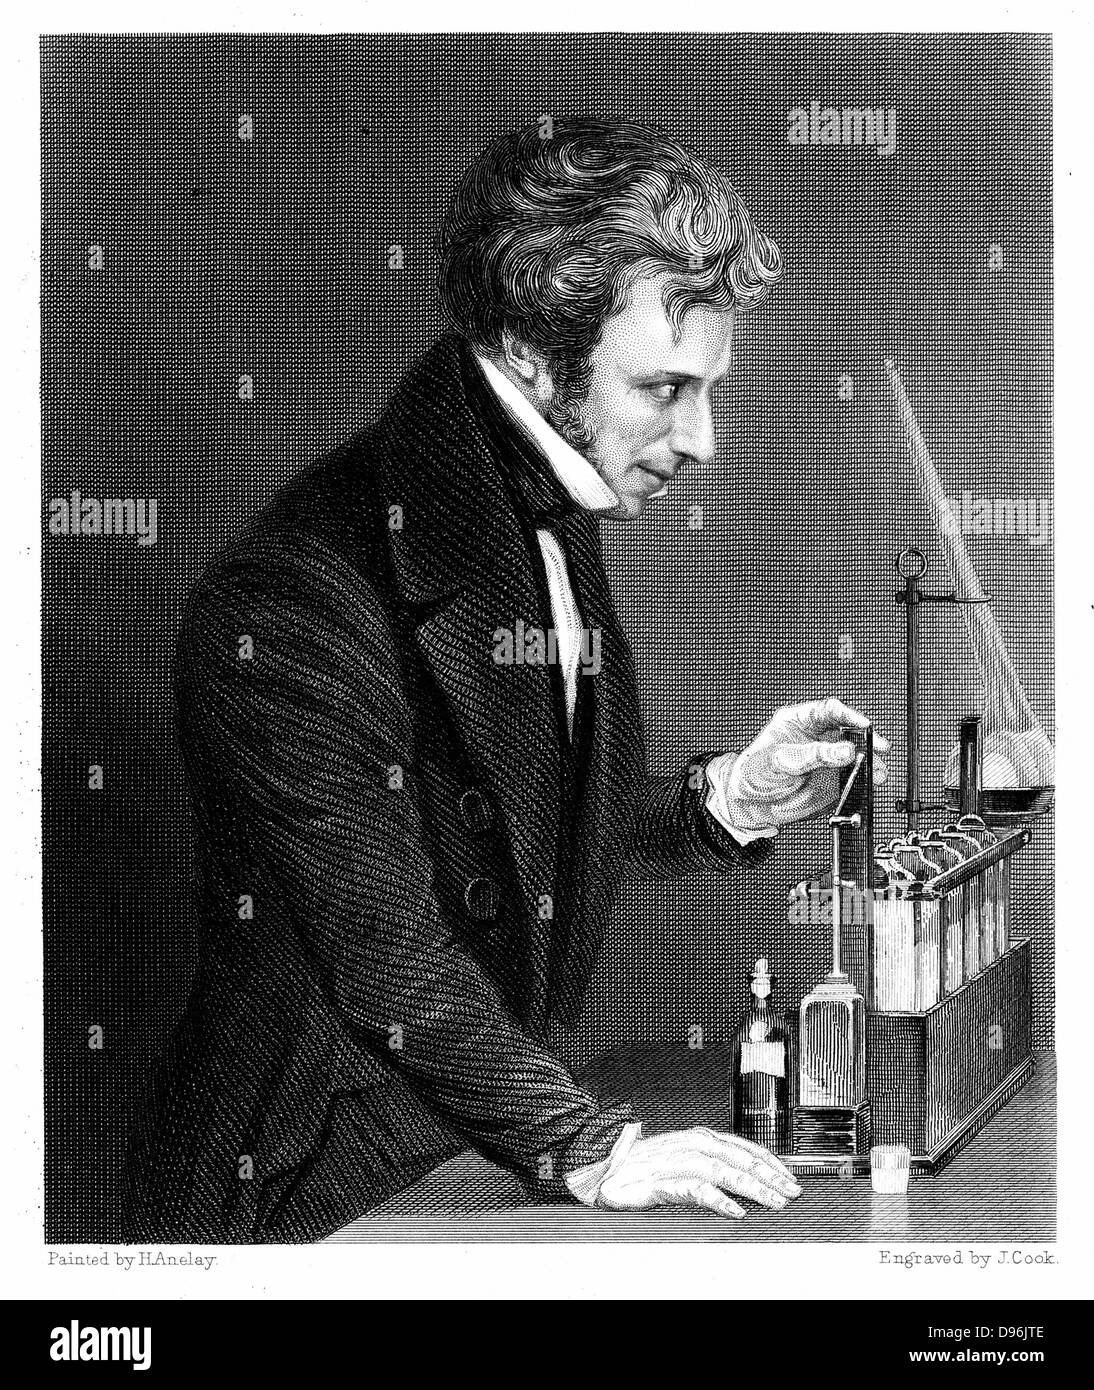 Michael Faraday (1791-1867) British chemist and physicist c1845.  Engraving - Stock Image